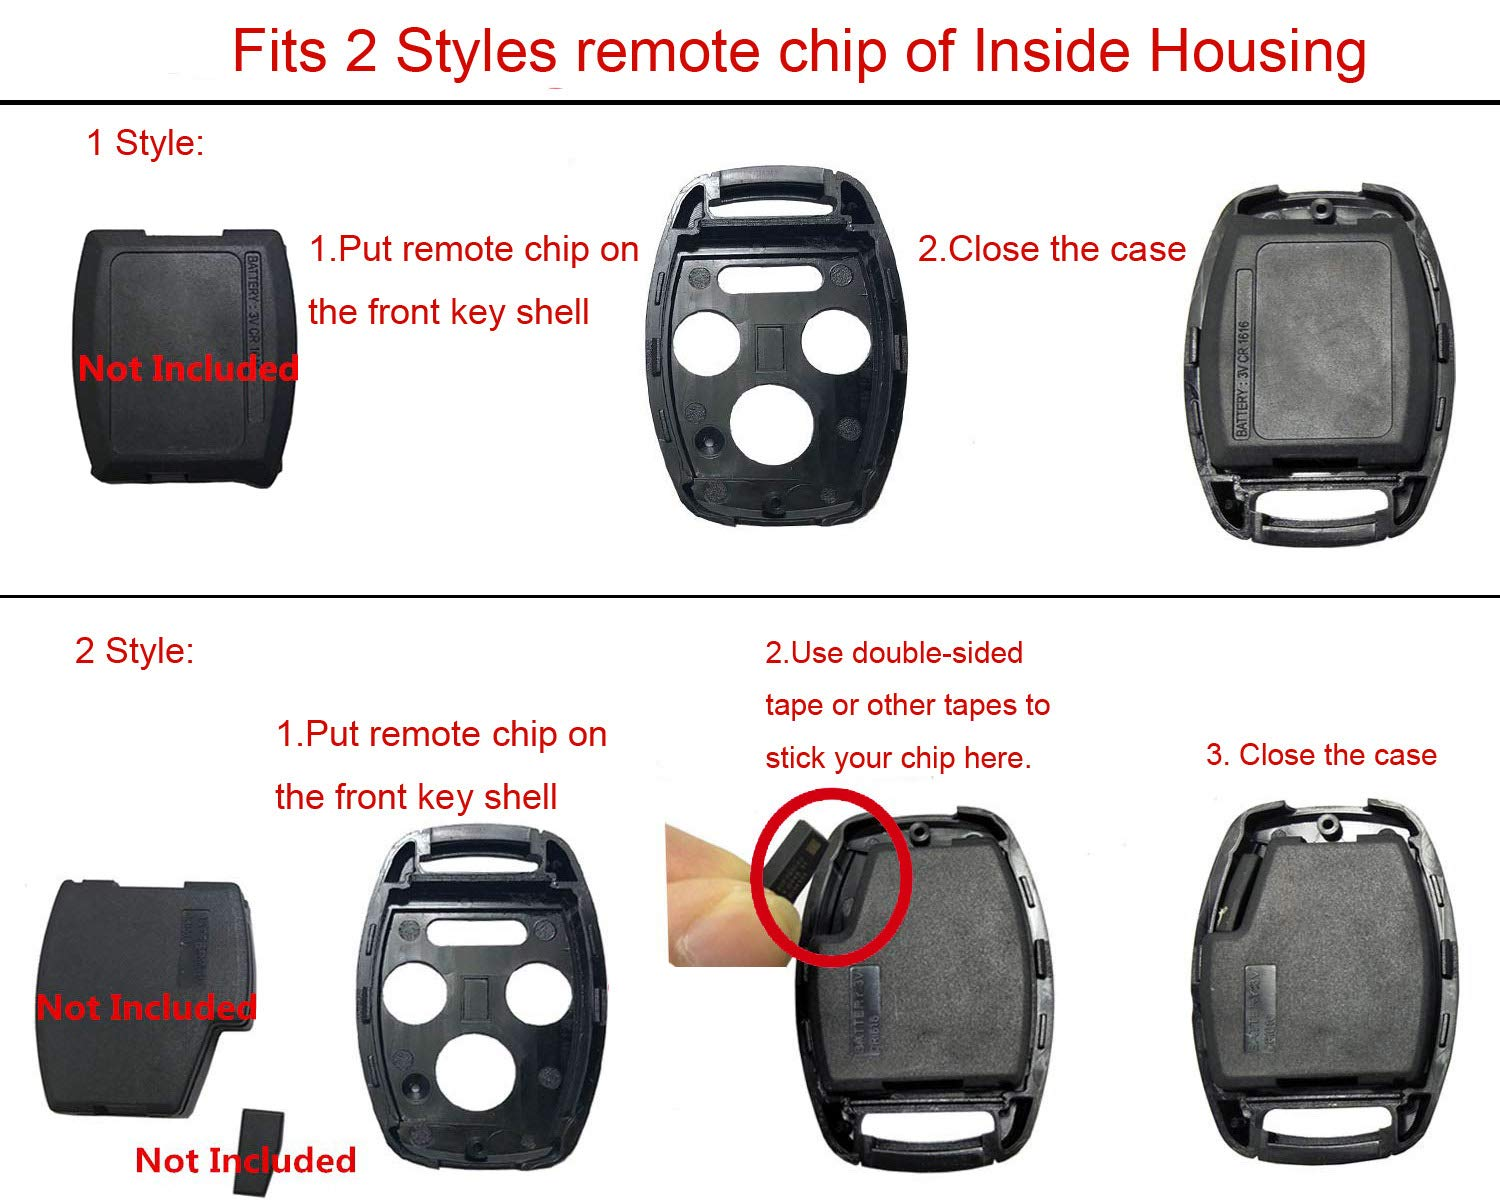 Key Fob Shell Case Fit for Honda Accord Crosstour Civic Odyssey CR-V CR-Z Fit Keyless Entry Remote Key Housing Replacement Without Blade 2 Buttons Casing Only